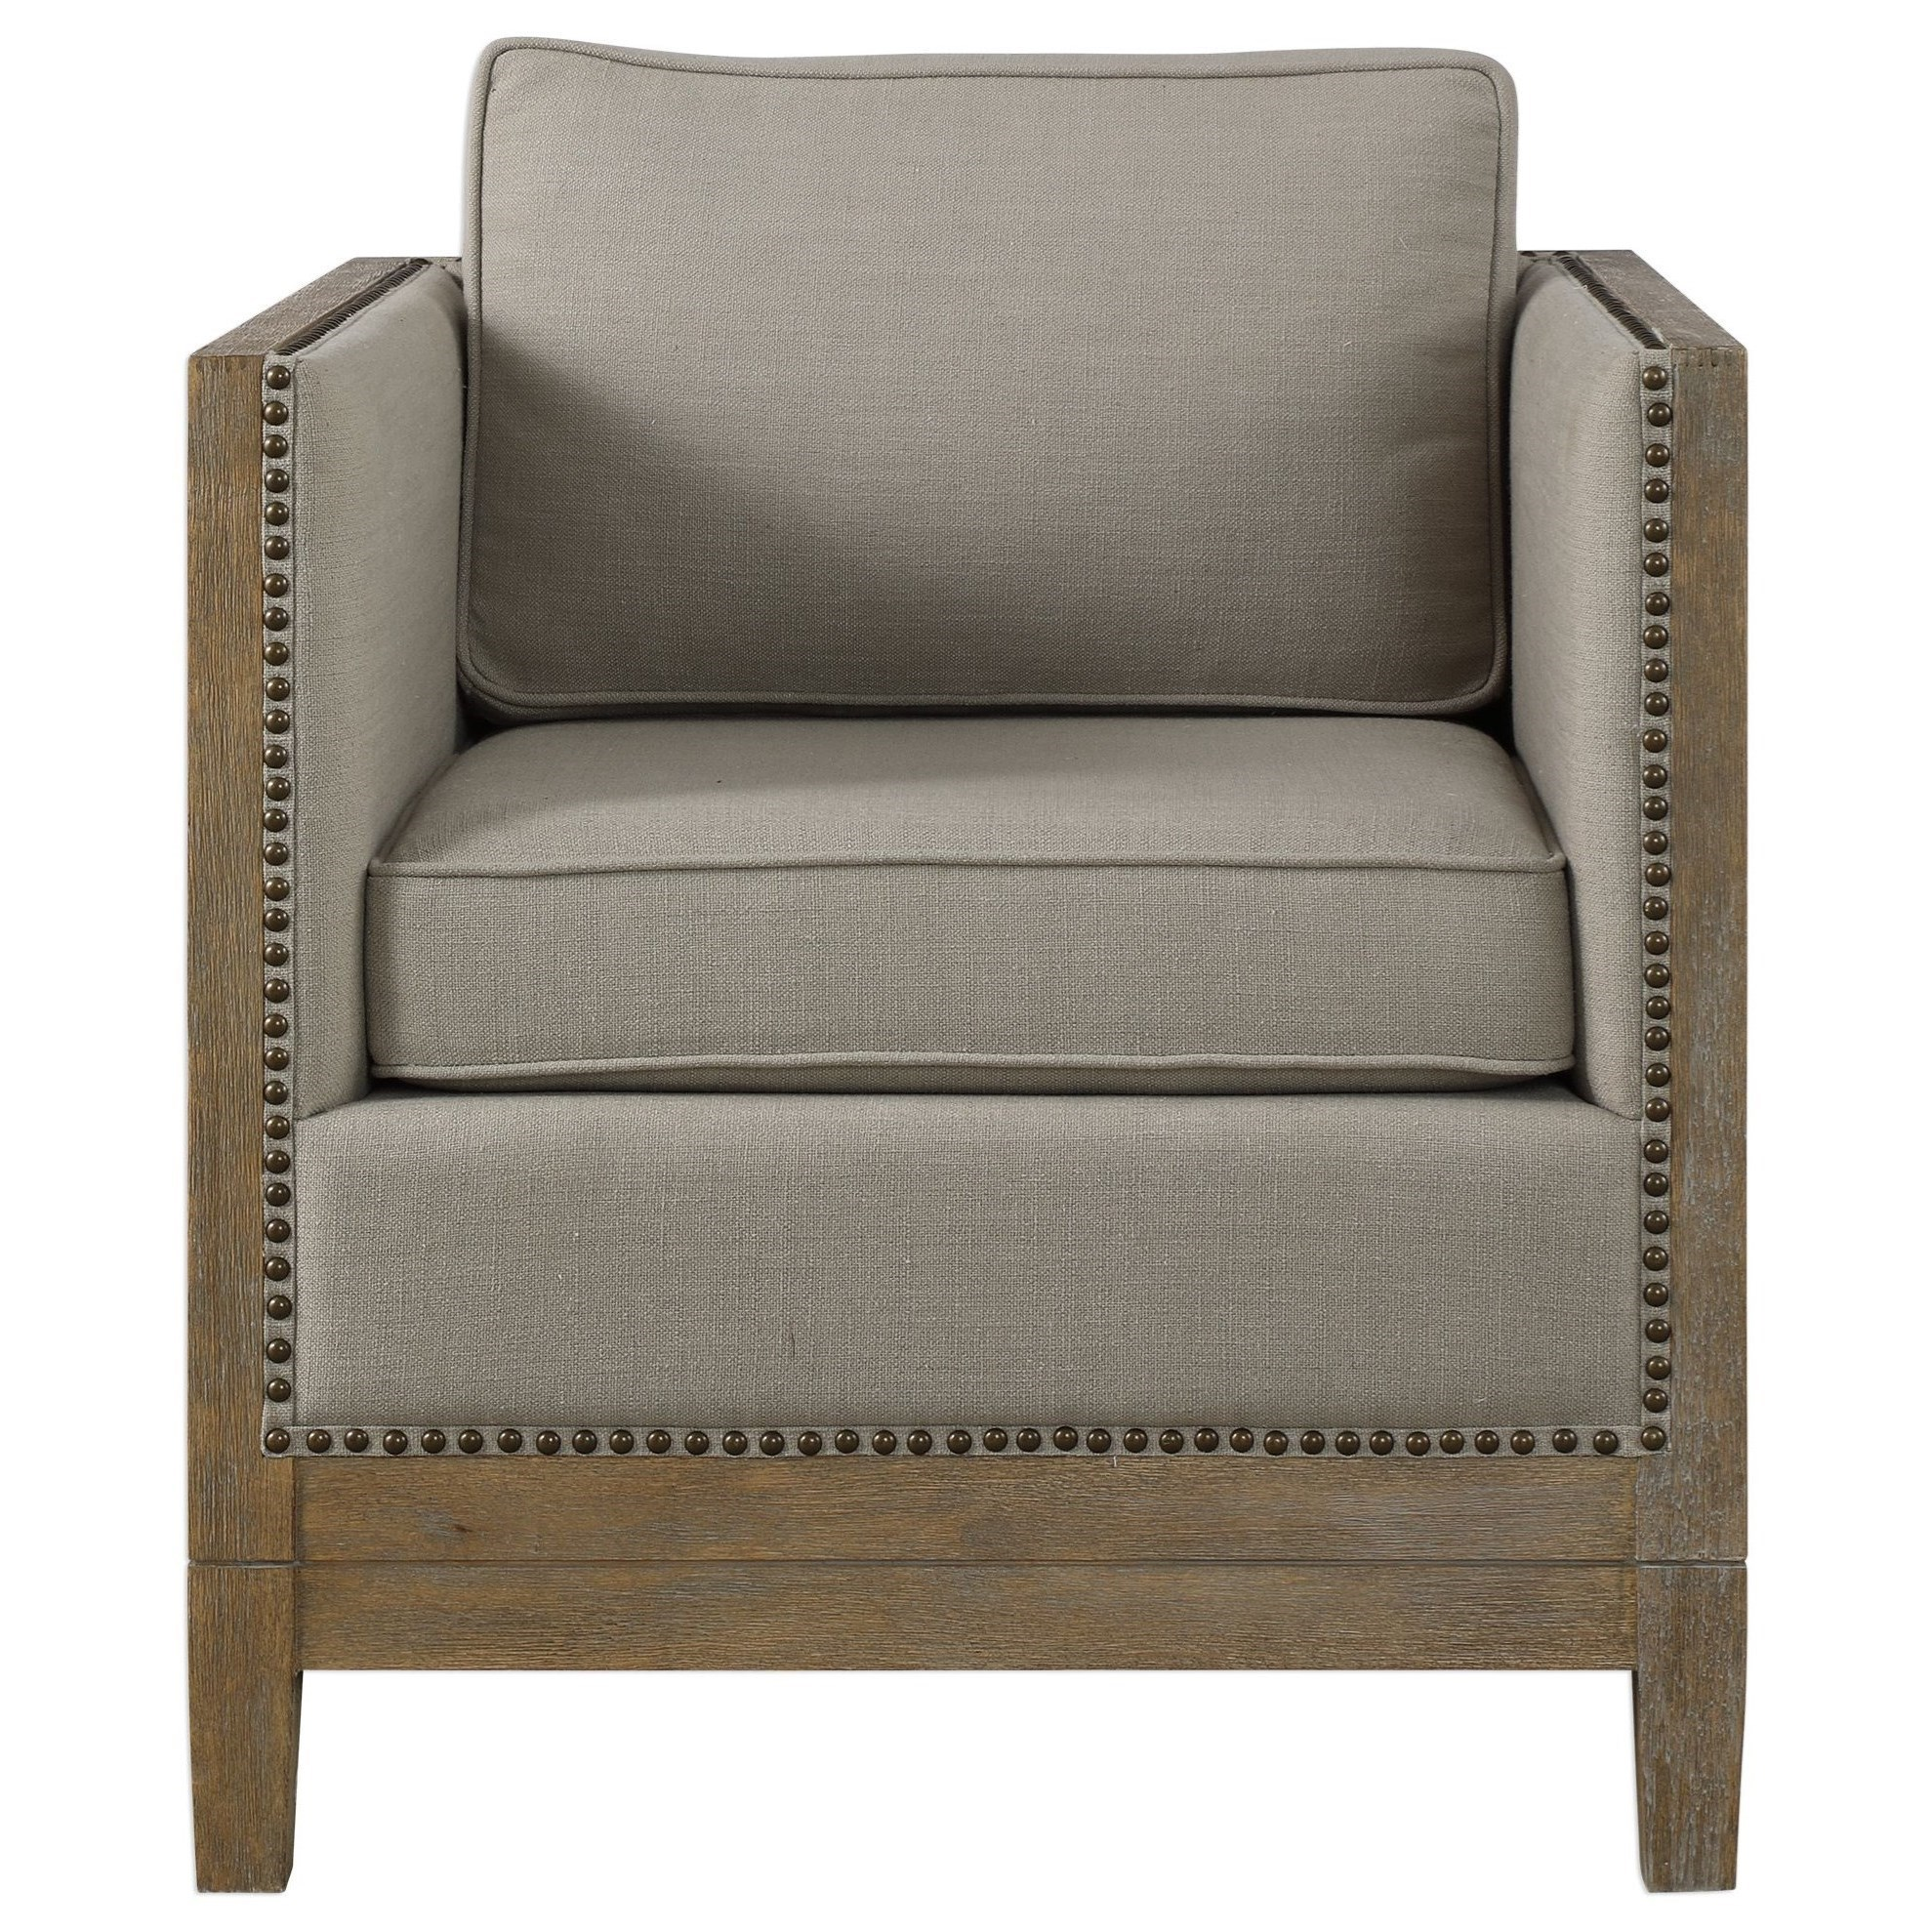 Uttermost Accent FurnitureKyle Weathered Oak Accent Chair ...